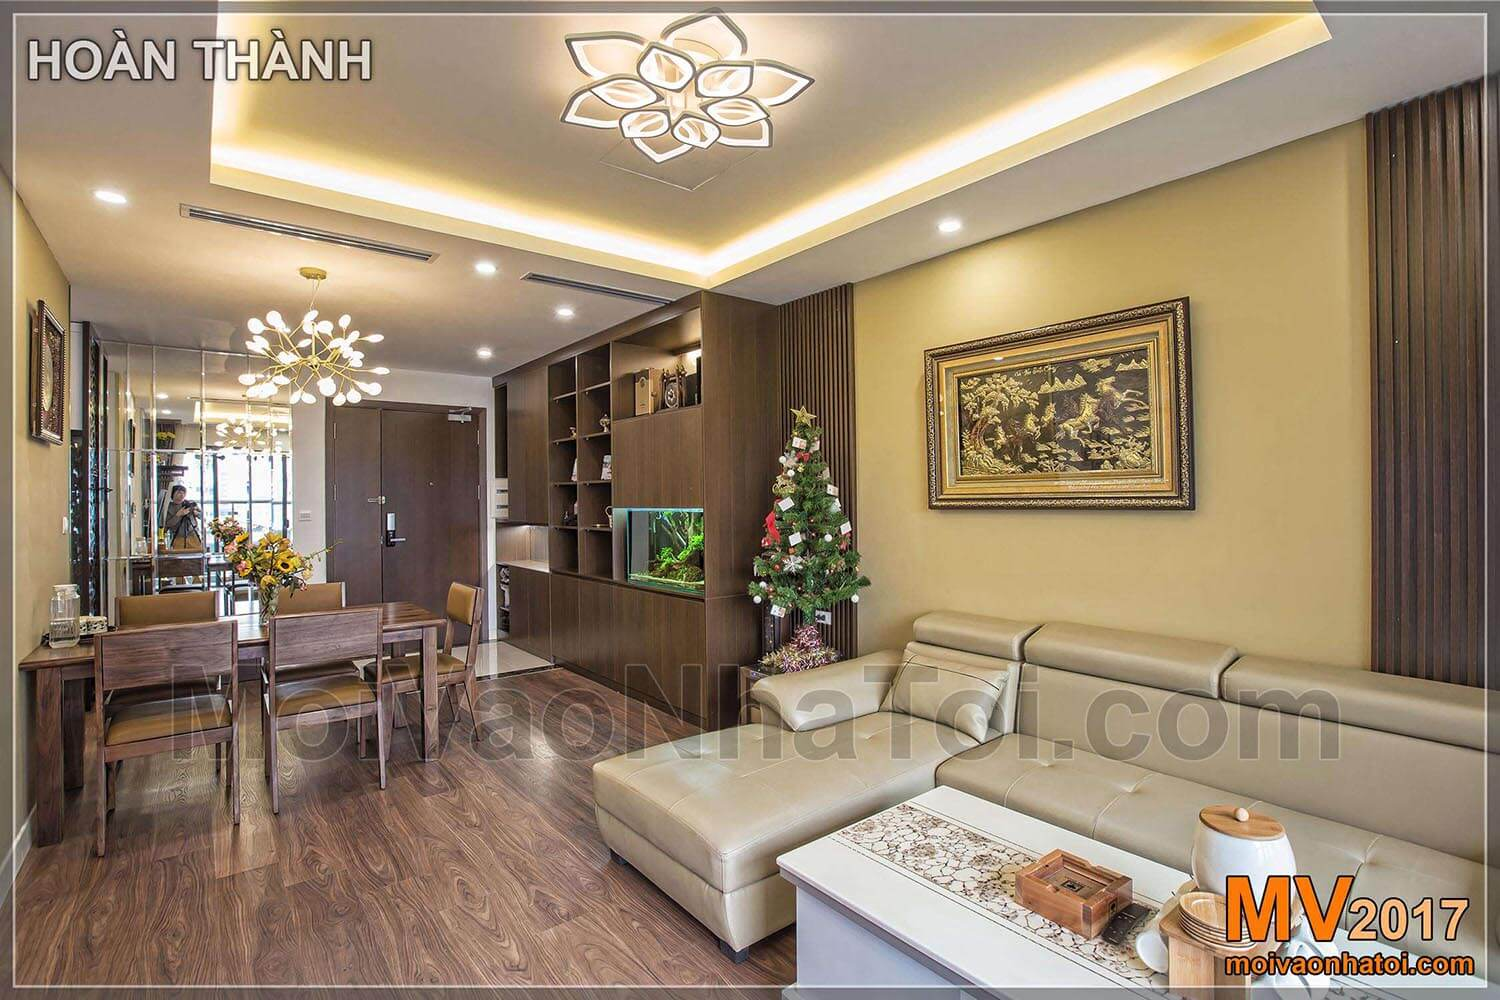 Panoramic views of the living room and dining table of the IMPERIA GARDEN apartment